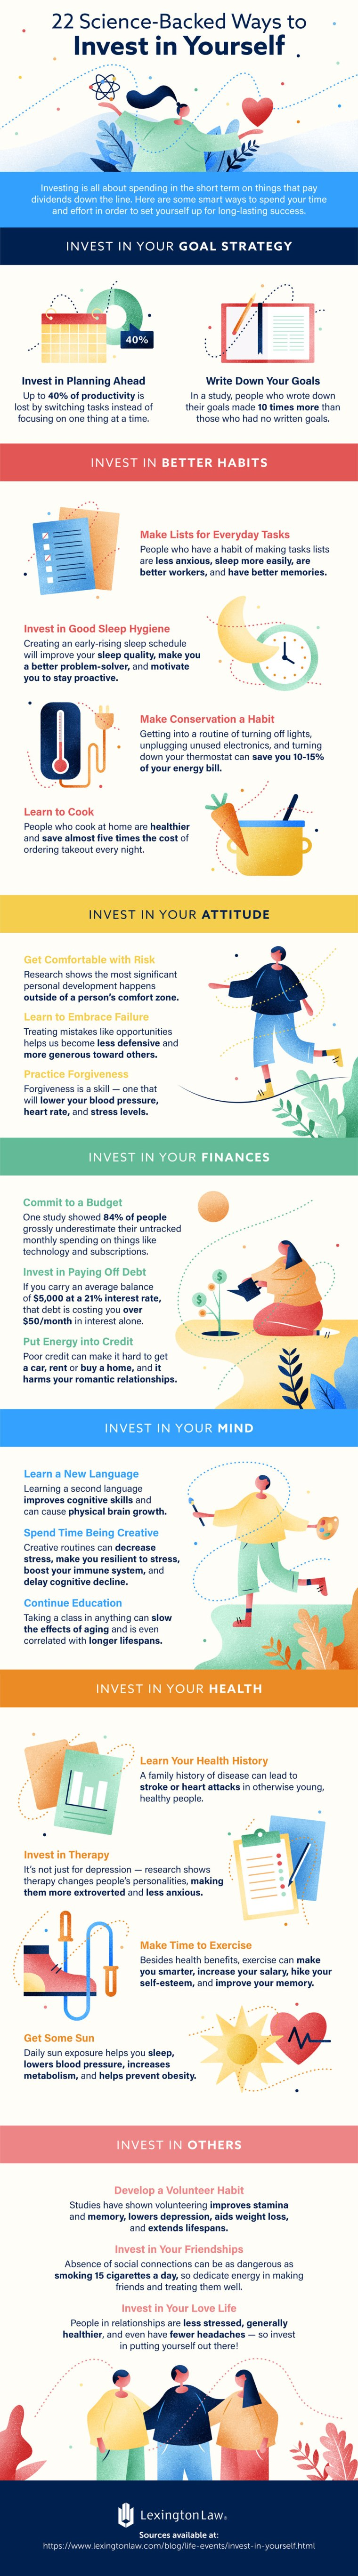 Science-backed ways to Invest in Yourself [Infographic] | ecogreenlove